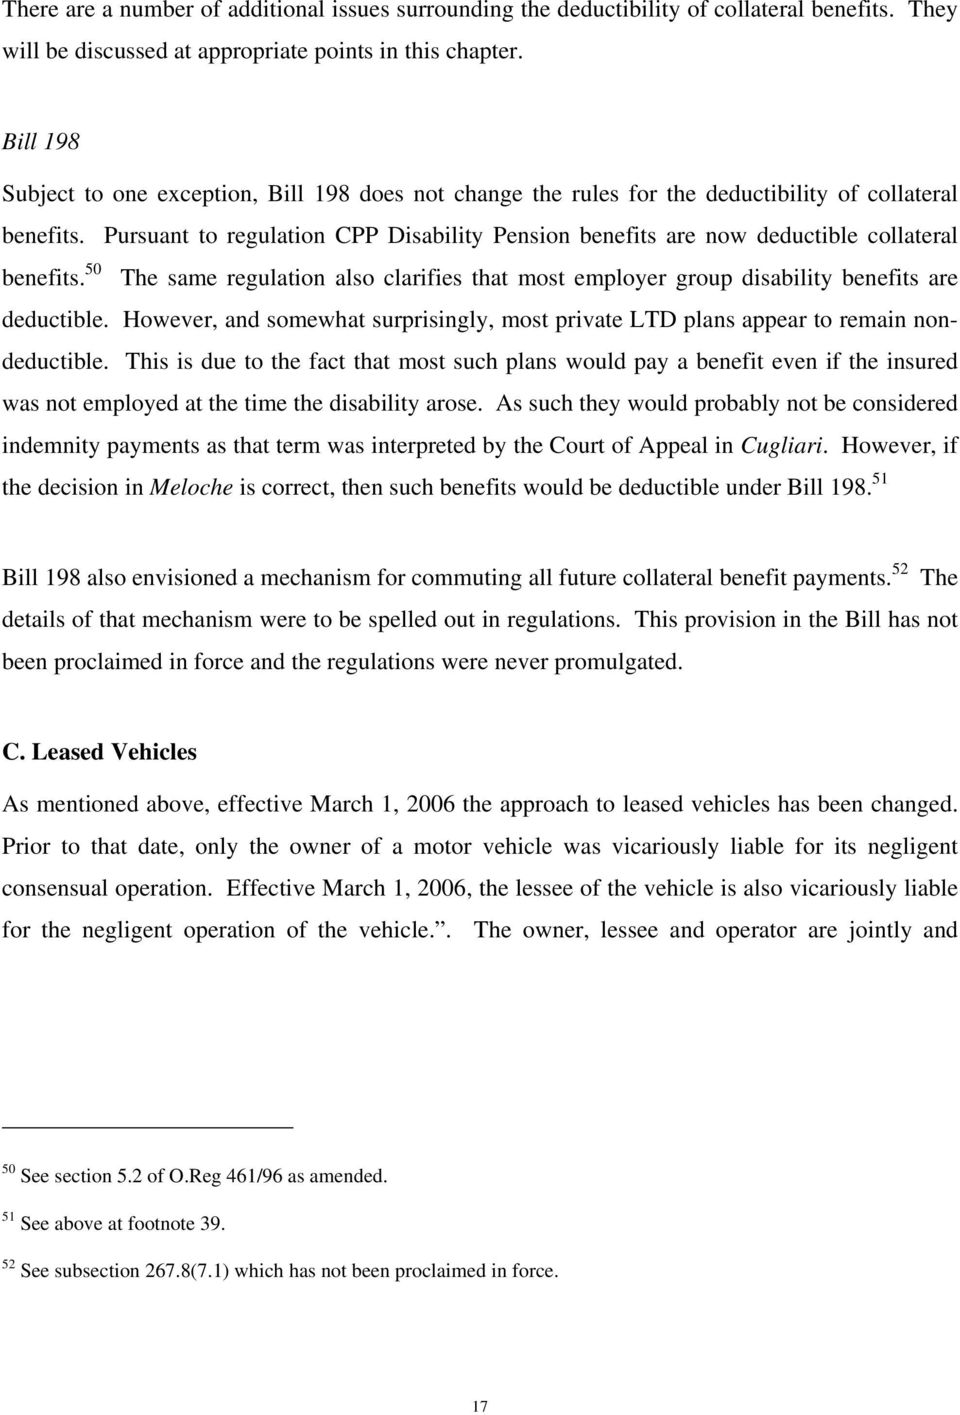 Pursuant to regulation CPP Disability Pension benefits are now deductible collateral benefits. 50 The same regulation also clarifies that most employer group disability benefits are deductible.